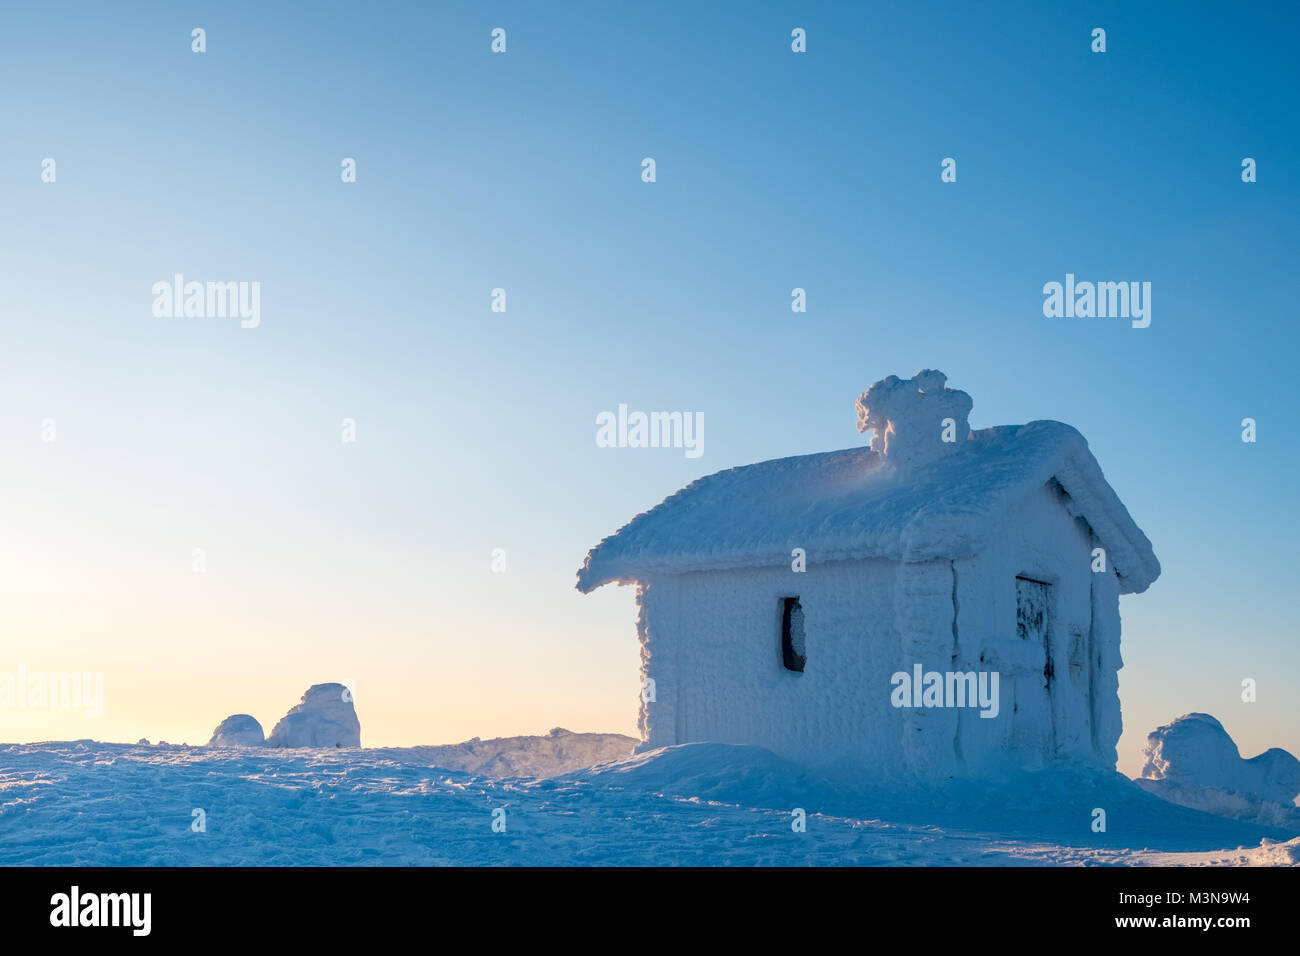 A snow encrusted cabin on the summit of a hill in Finland - Stock Image